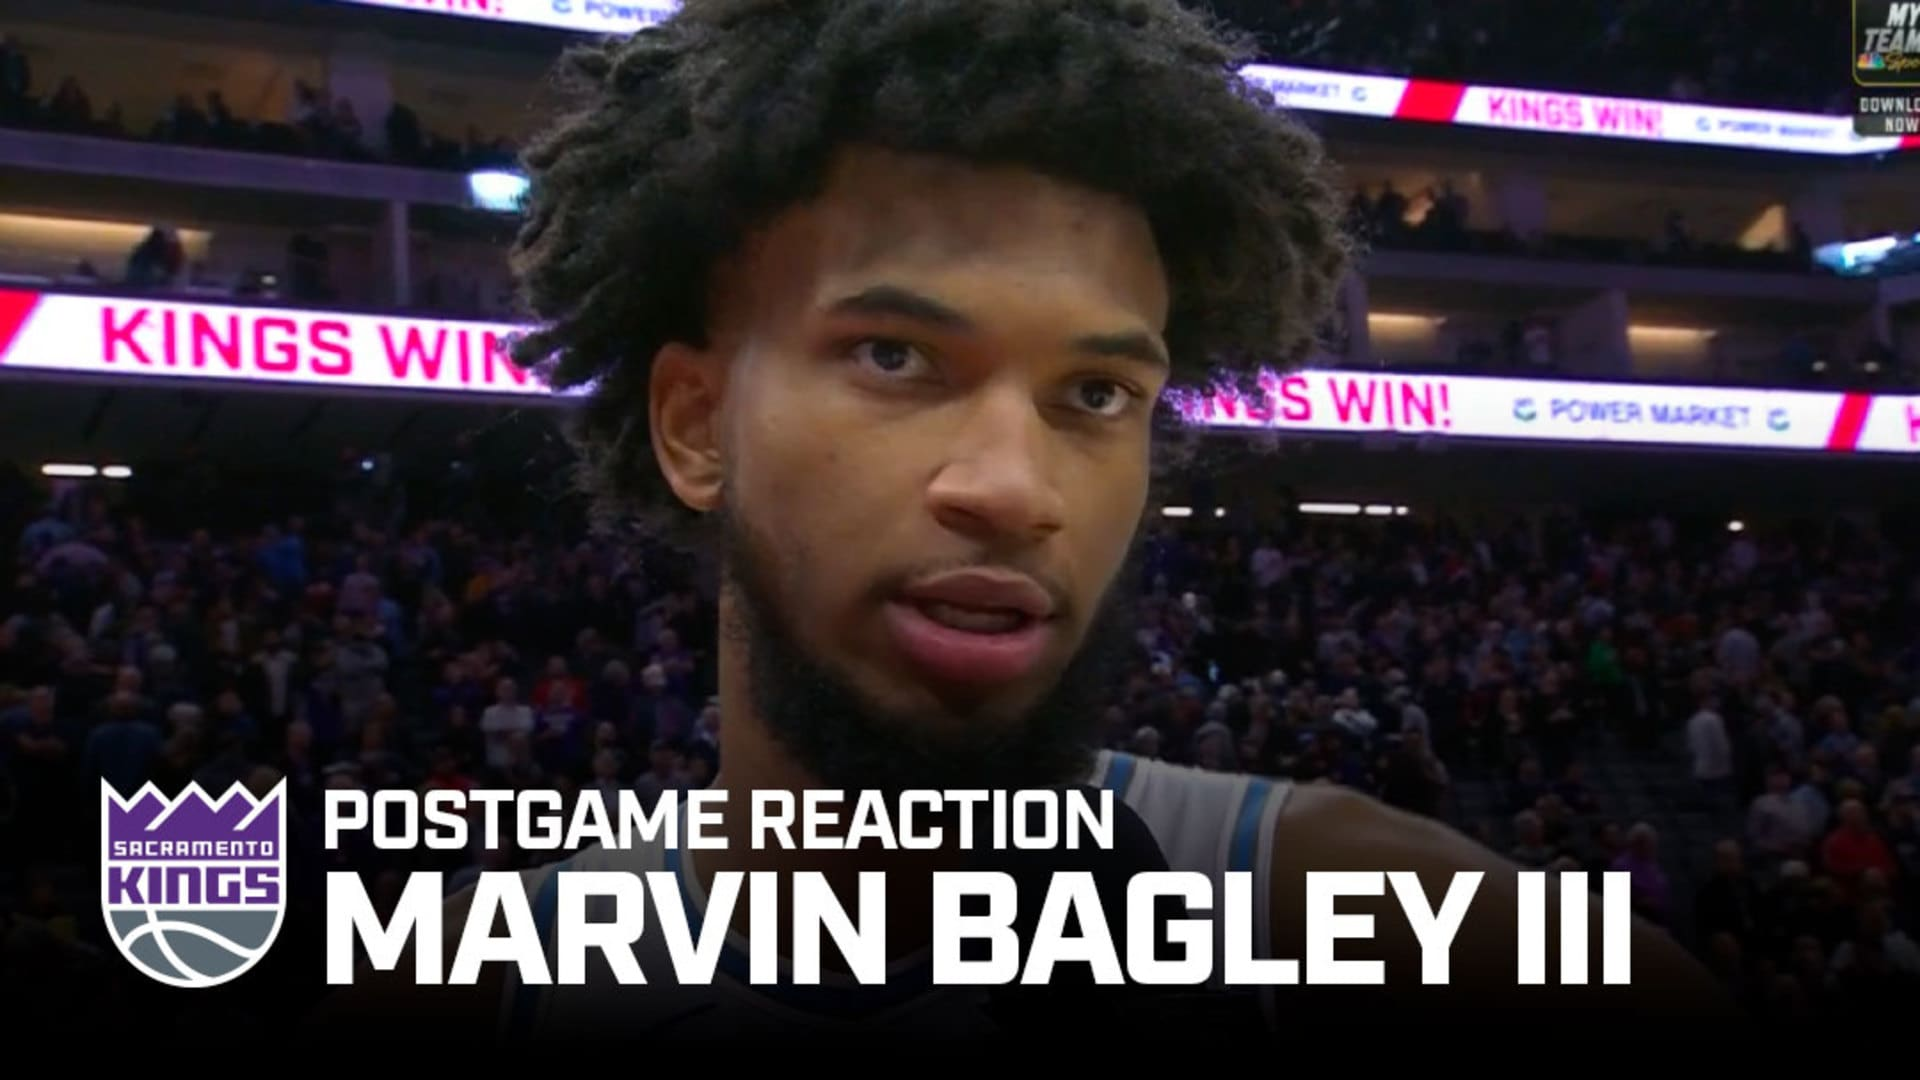 'We're Coming Together' | Marvin Bagley III Postgame Reaction 12.11.19